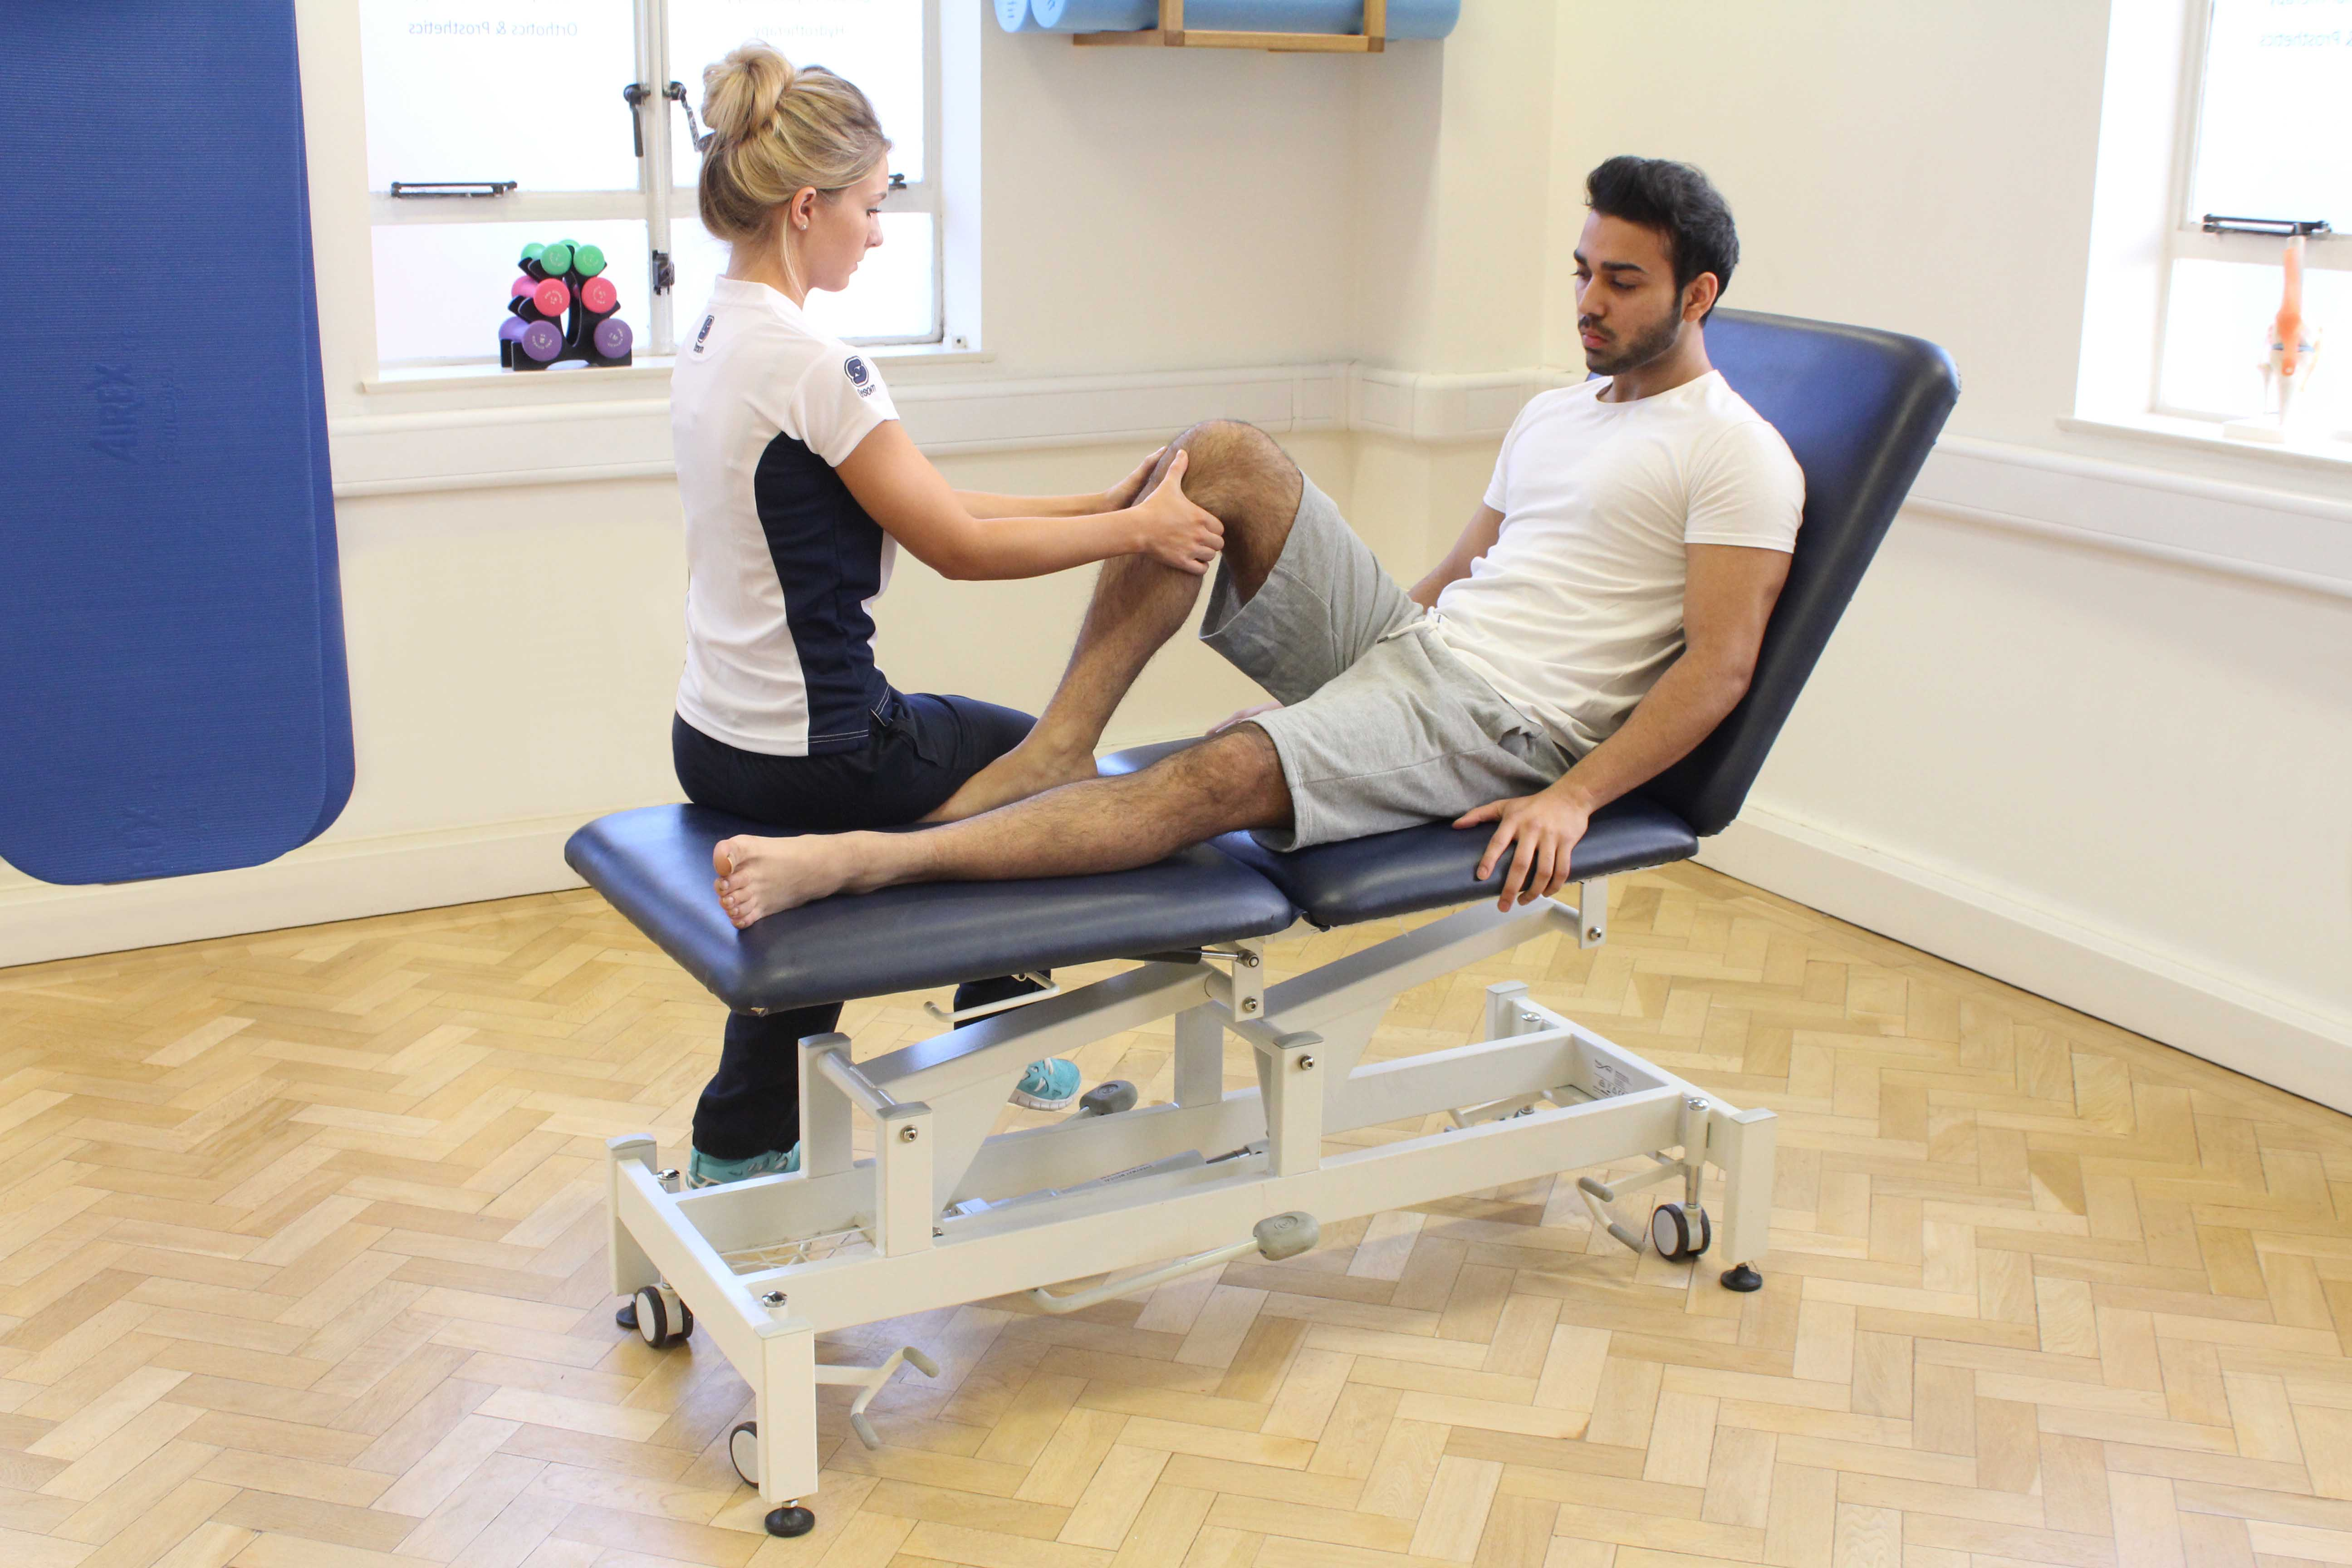 Massage and mobilisations of the joint and connective tissue of the knee